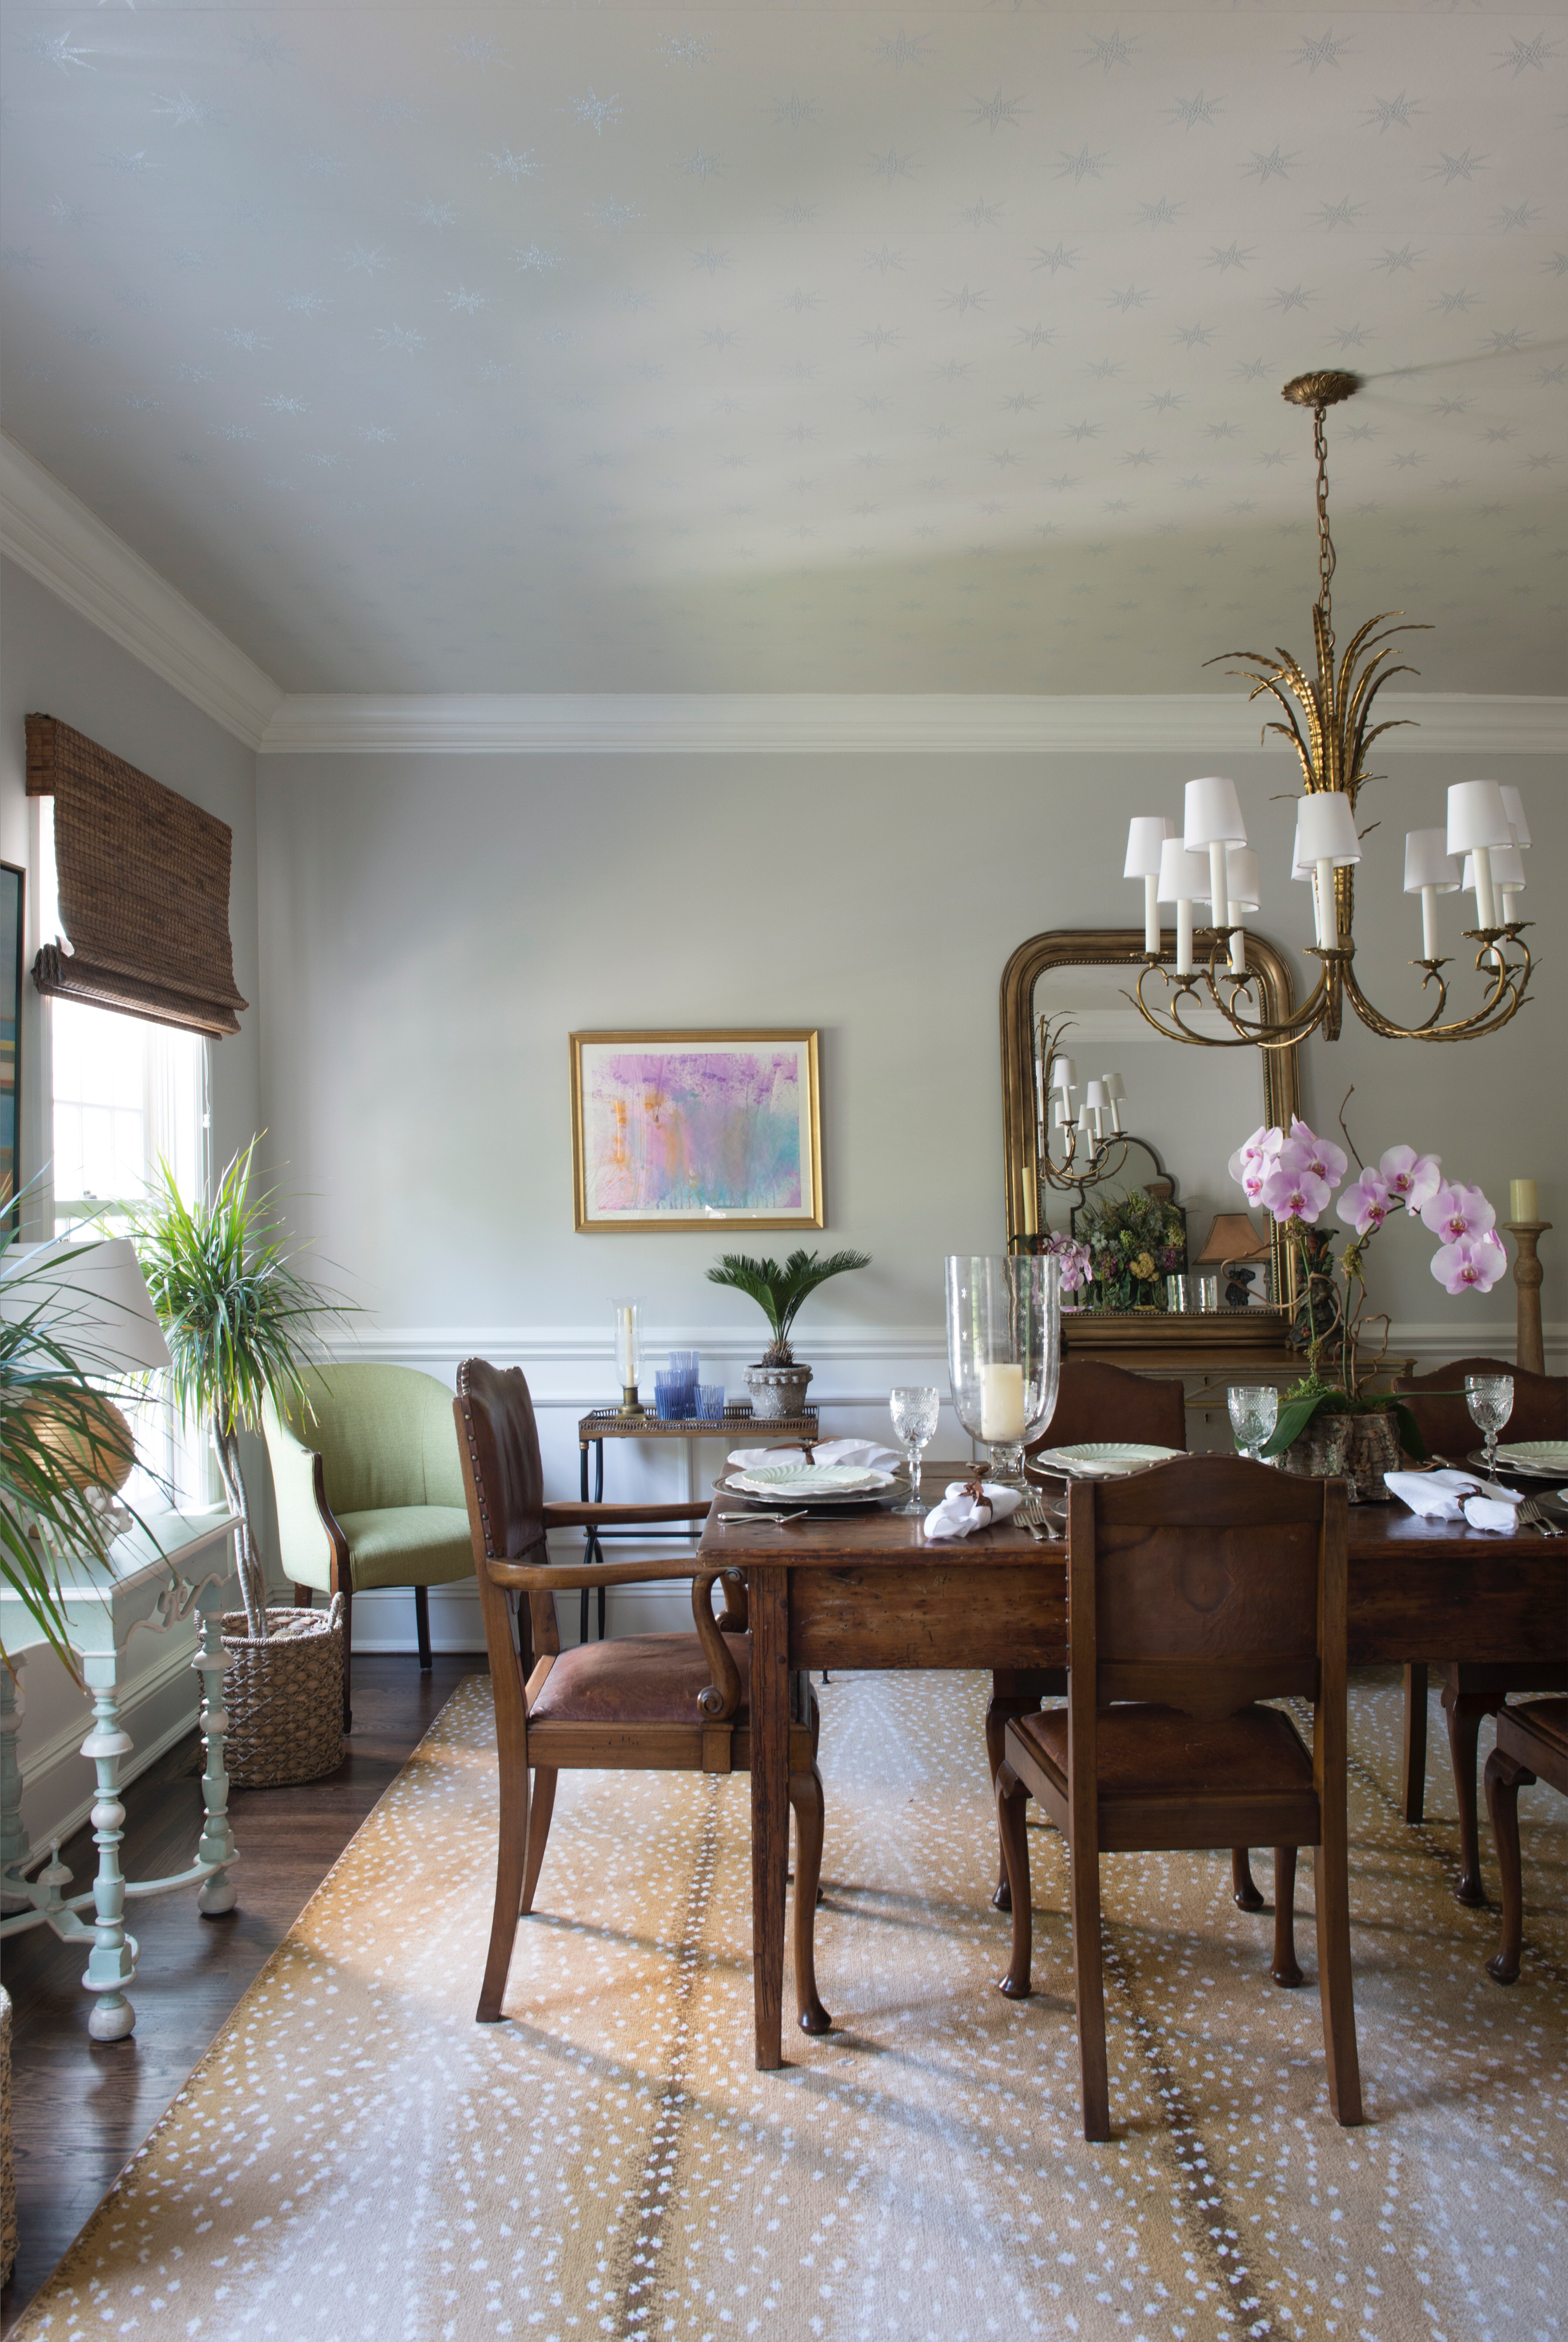 Spencer Cox Interiors Dining Room 2 Interior Design New Canaan.JPG